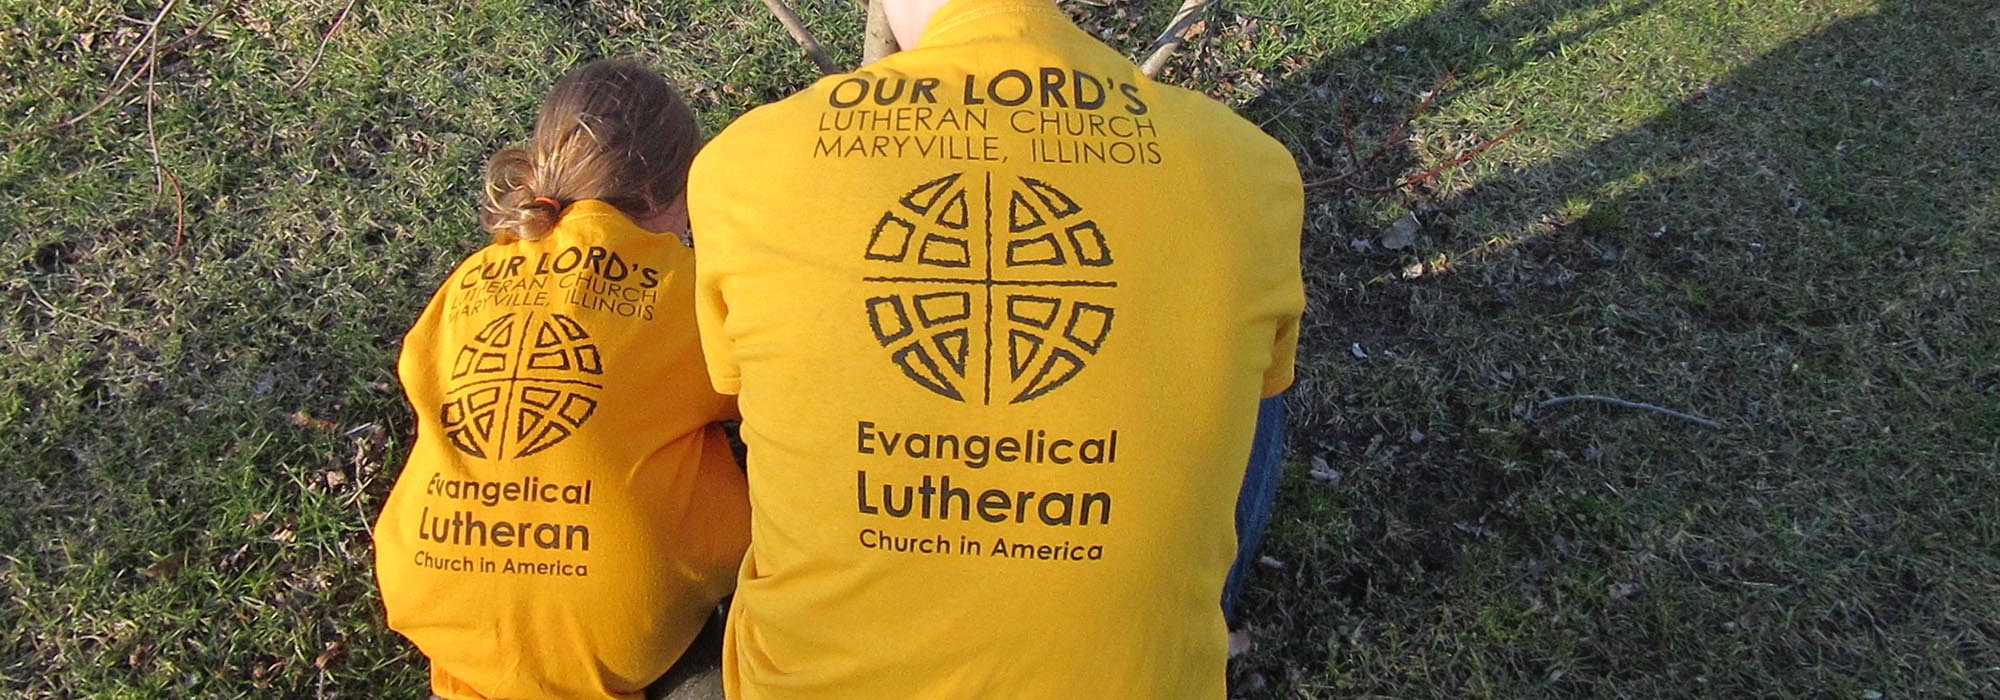 About Our Lord's Lutheran Church